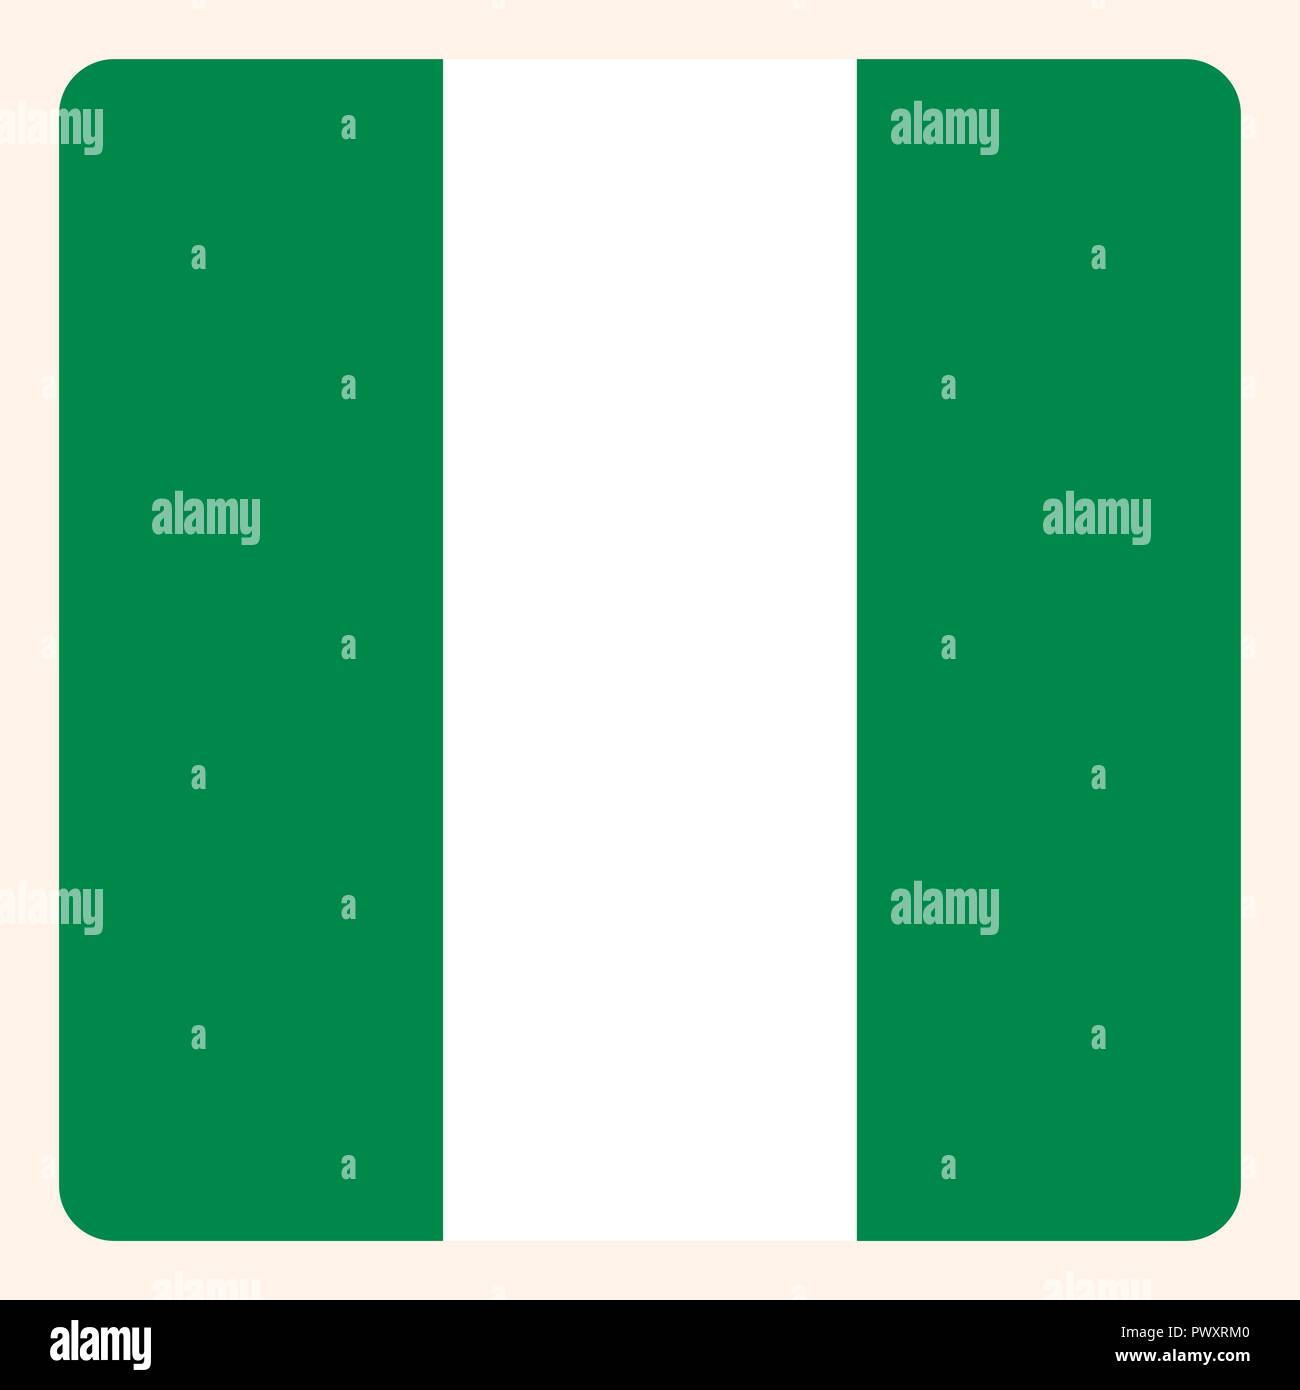 Nigeria square flag button, social media communication sign, business icon. - Stock Vector